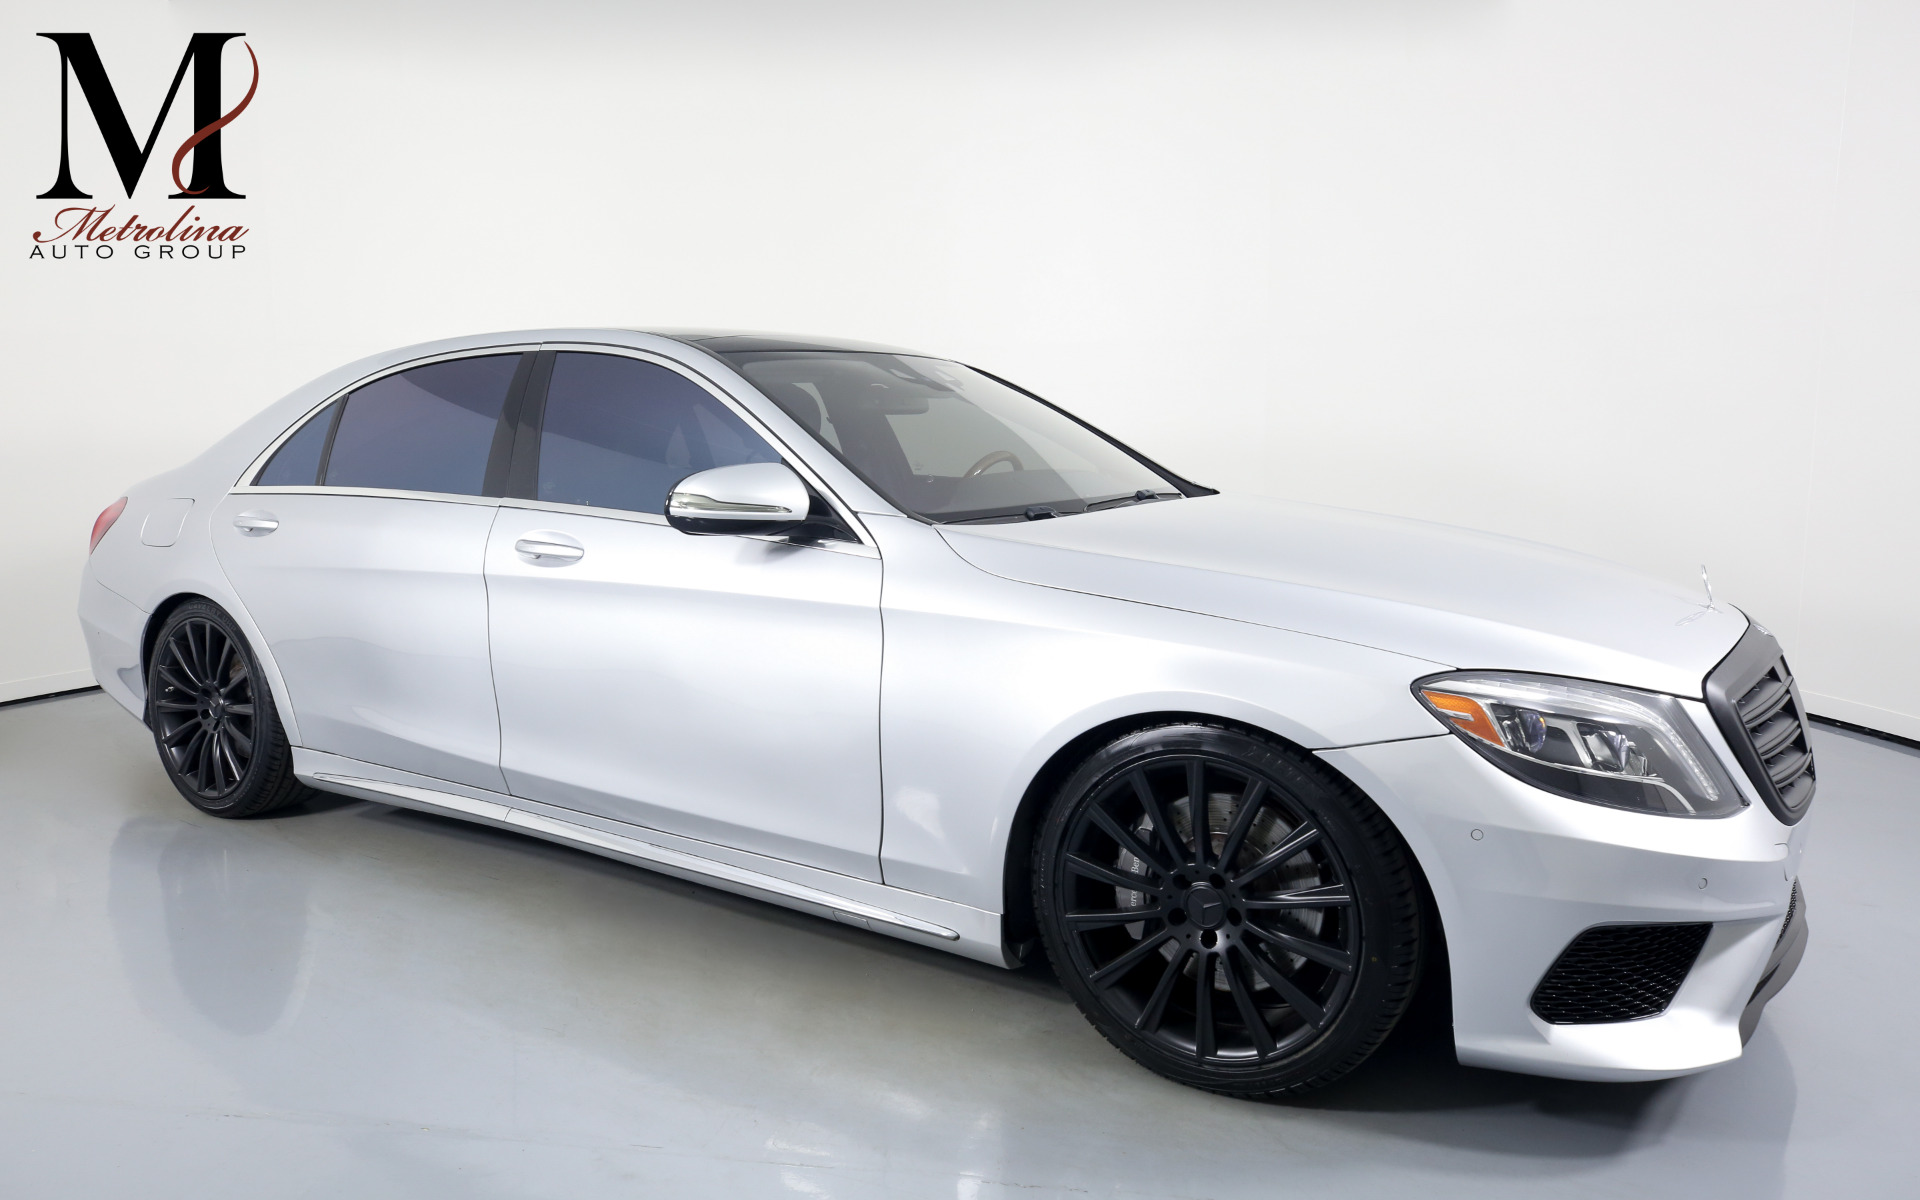 Used 2014 Mercedes-Benz S-Class S 550 for sale $44,996 at Metrolina Auto Group in Charlotte NC 28217 - 1